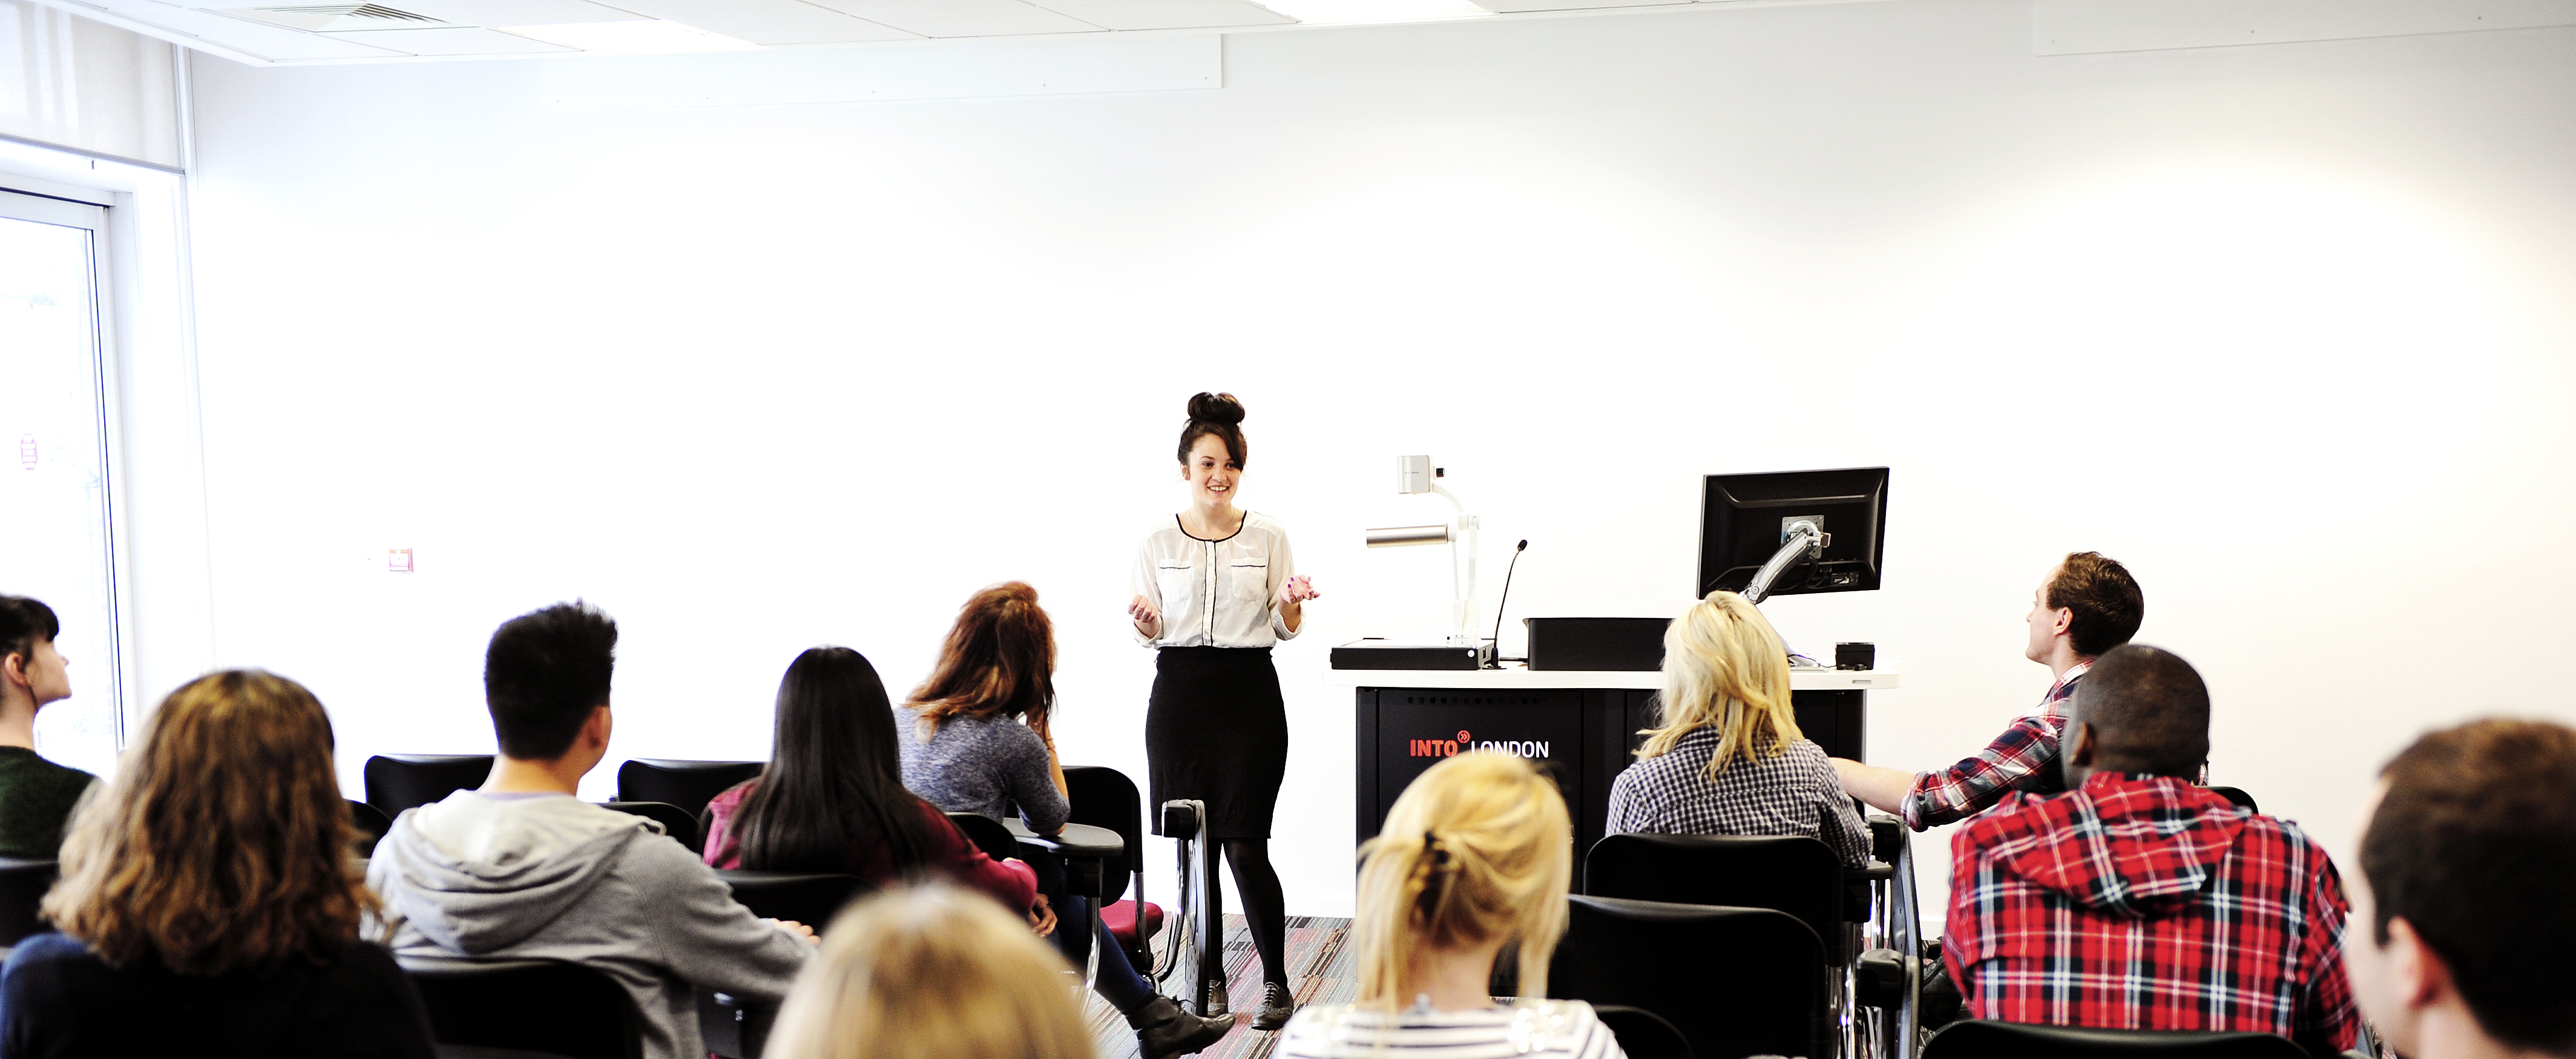 Image of classroom with teacher and international students